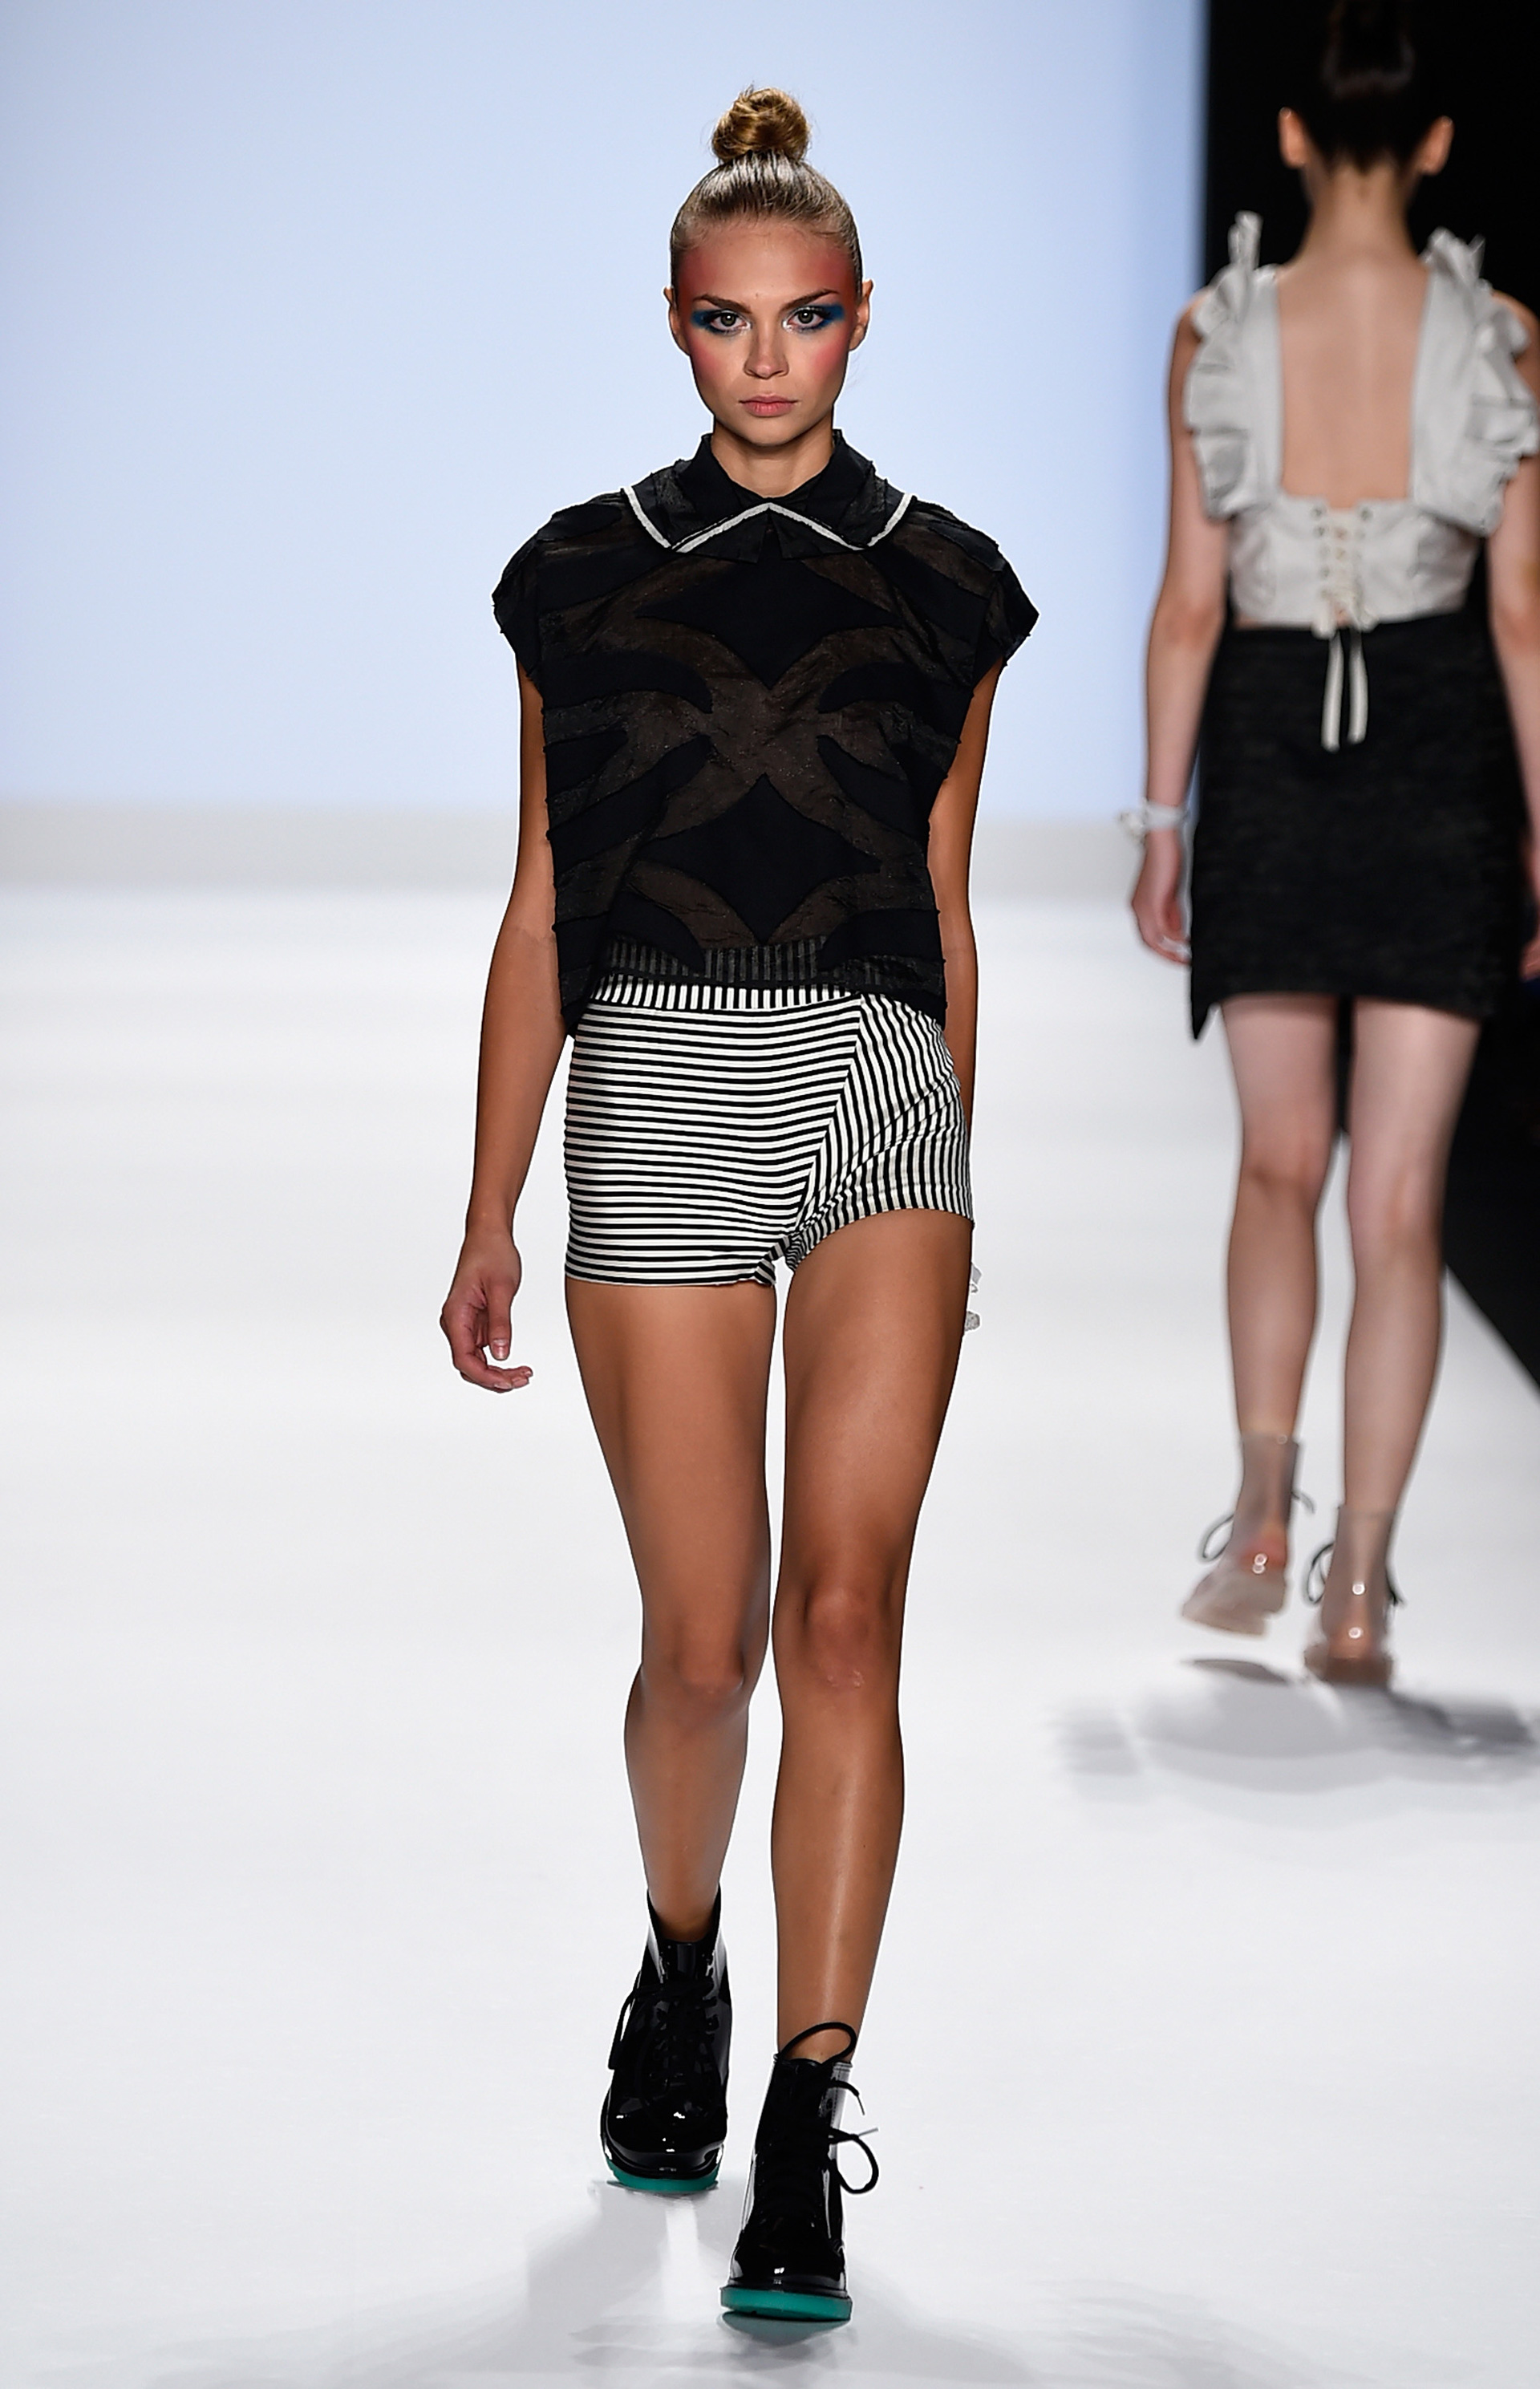 Project Runway's Fashion Week show 1